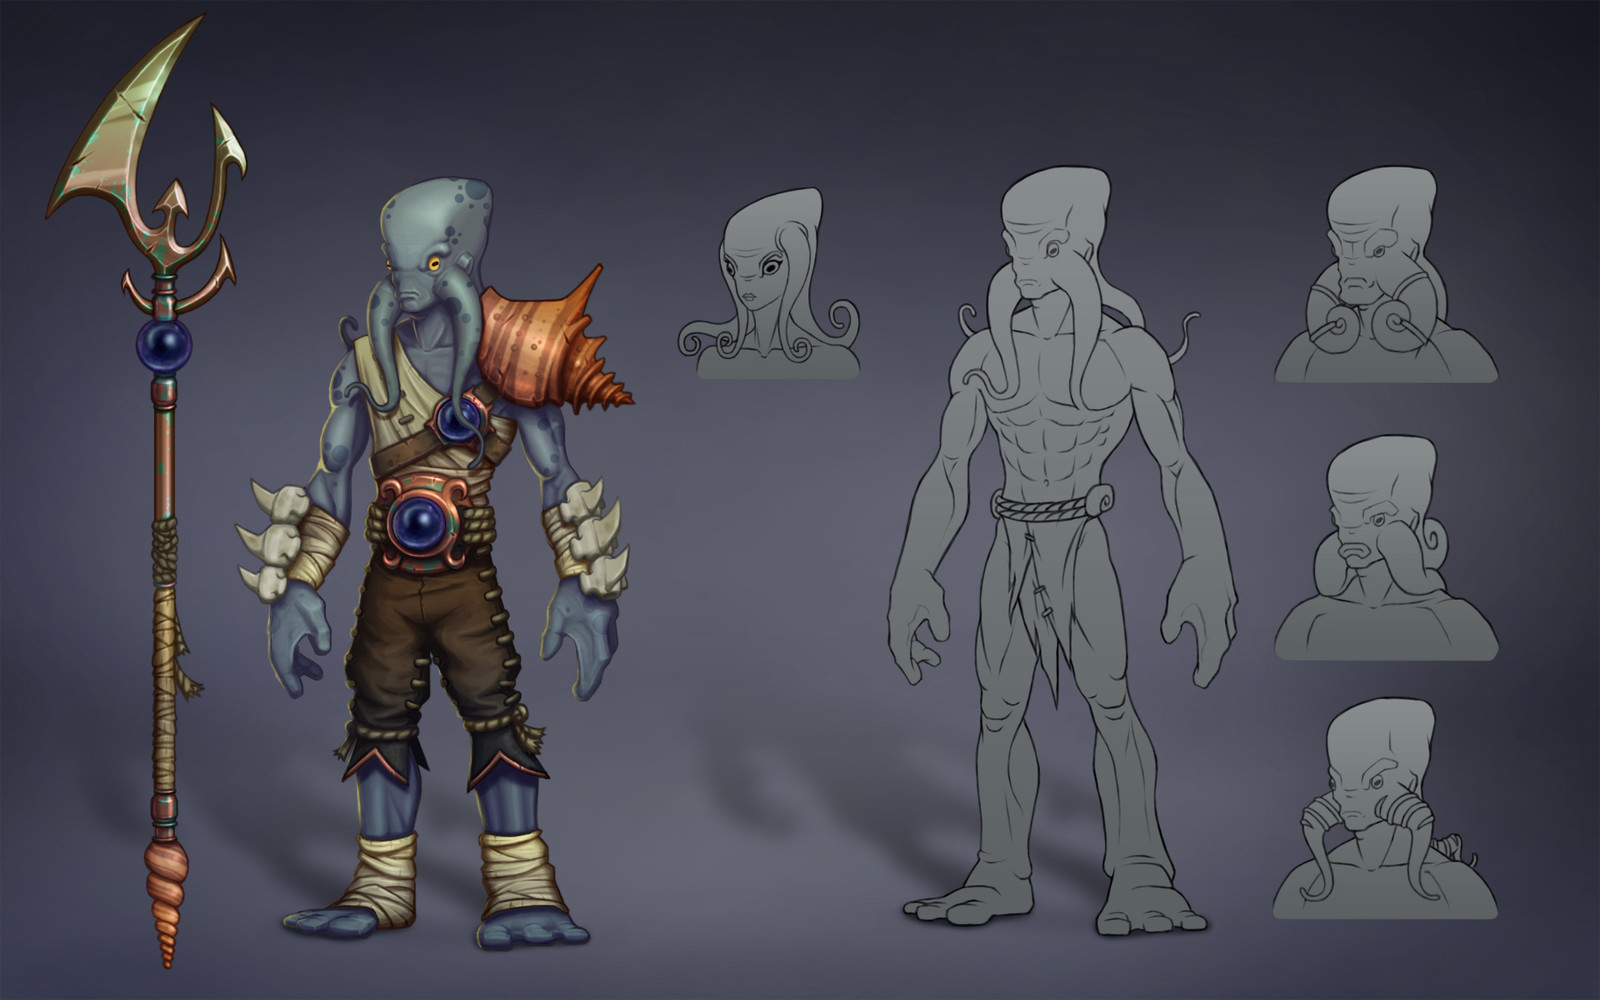 Stylized Concept of a Aquatic Race